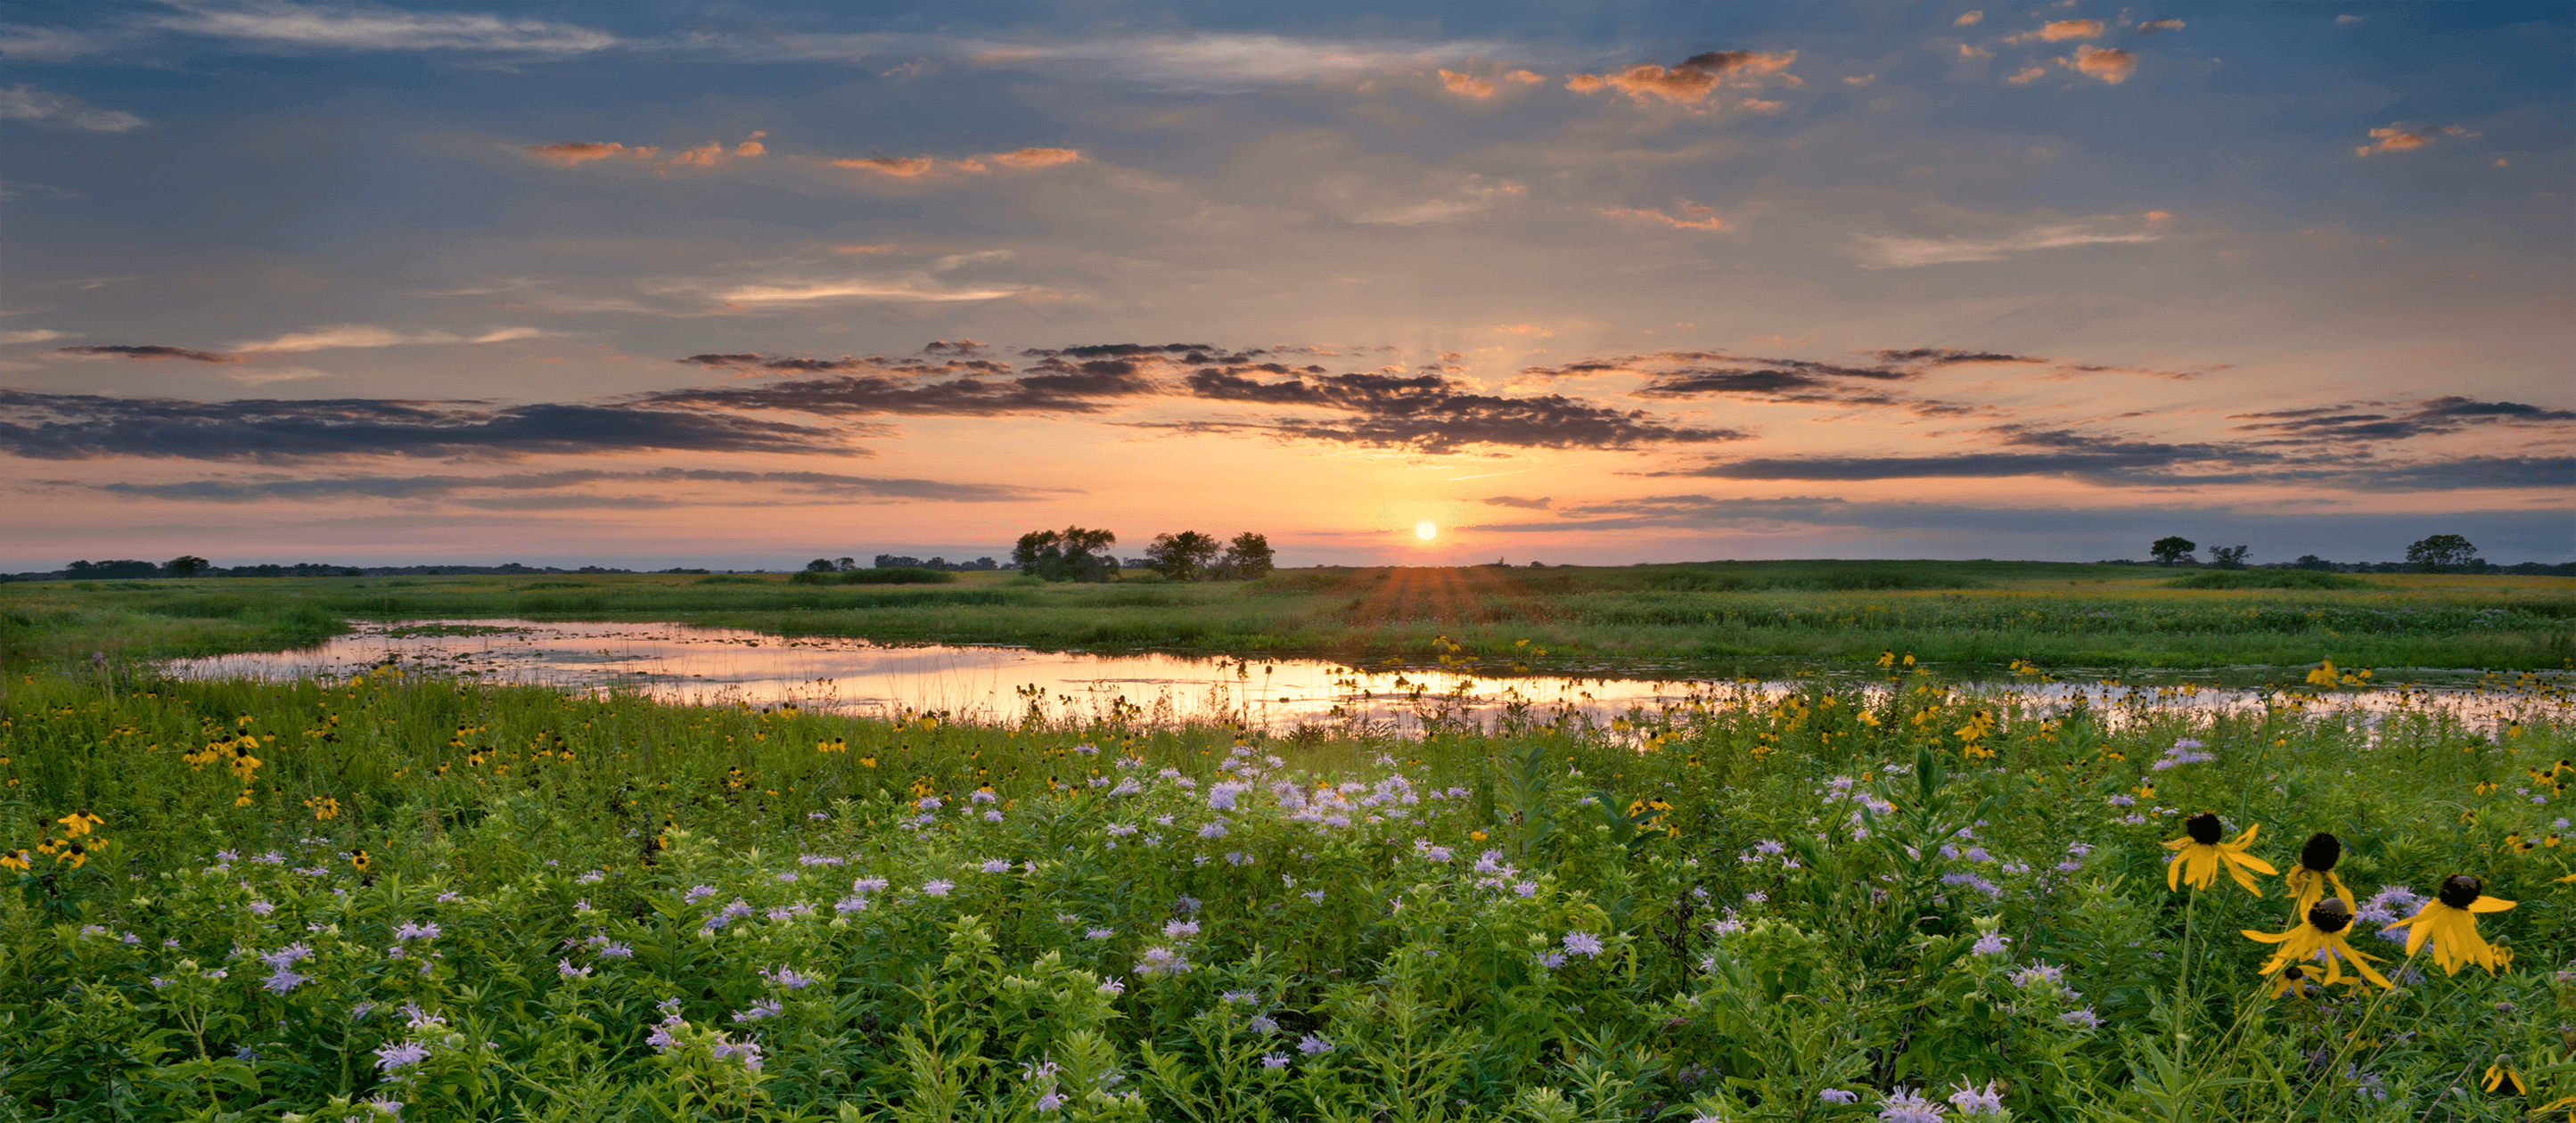 Image of a stream surrounded by flowers at sunset